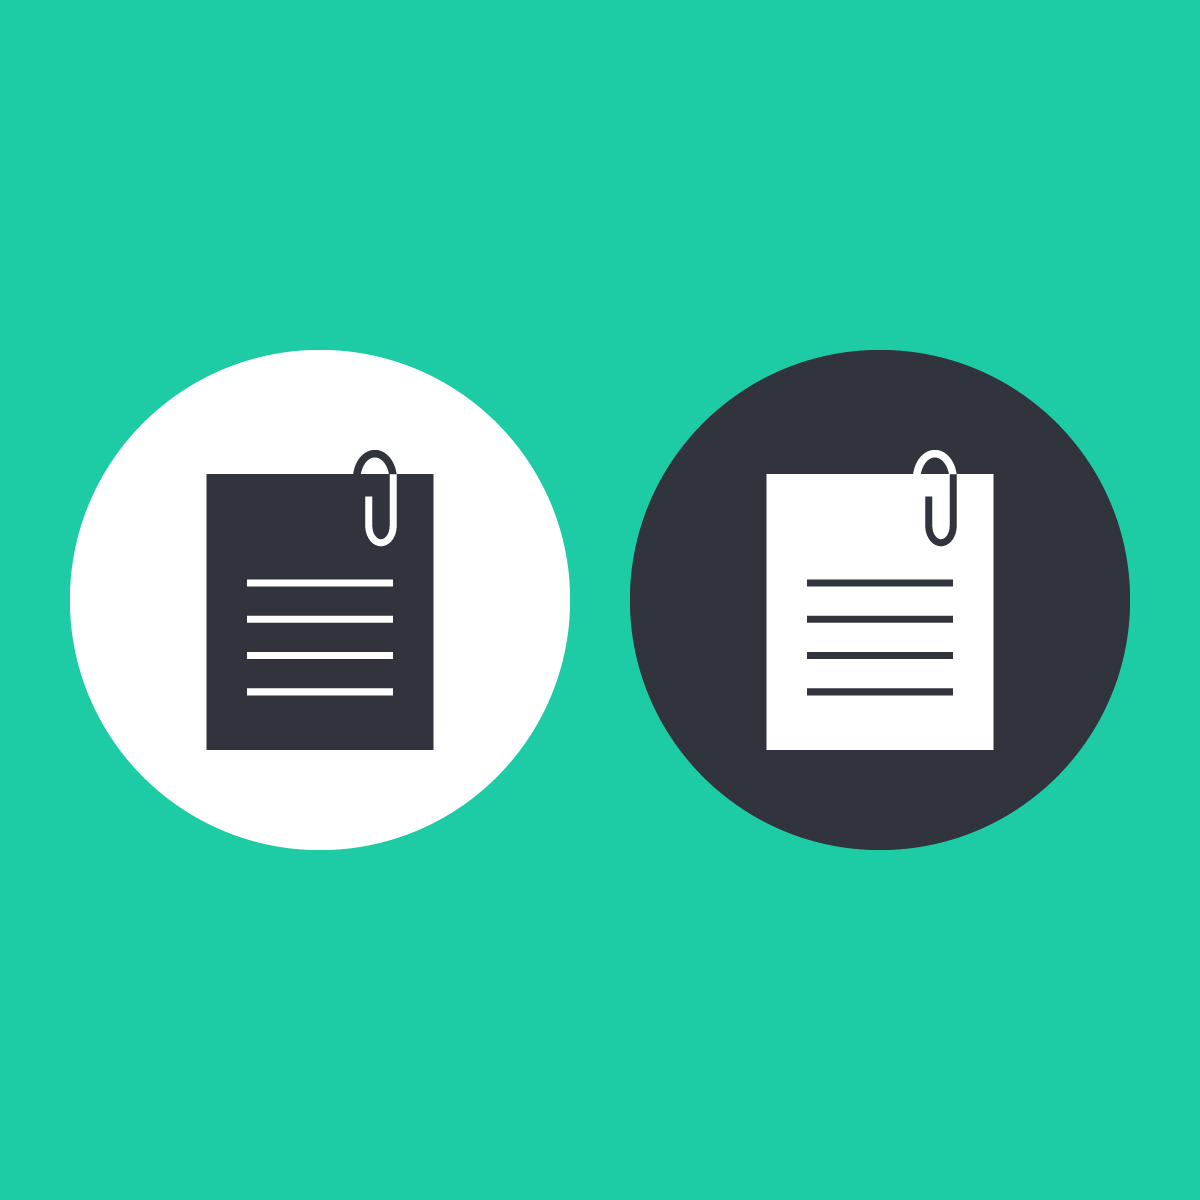 two duplicate files icons on a green background